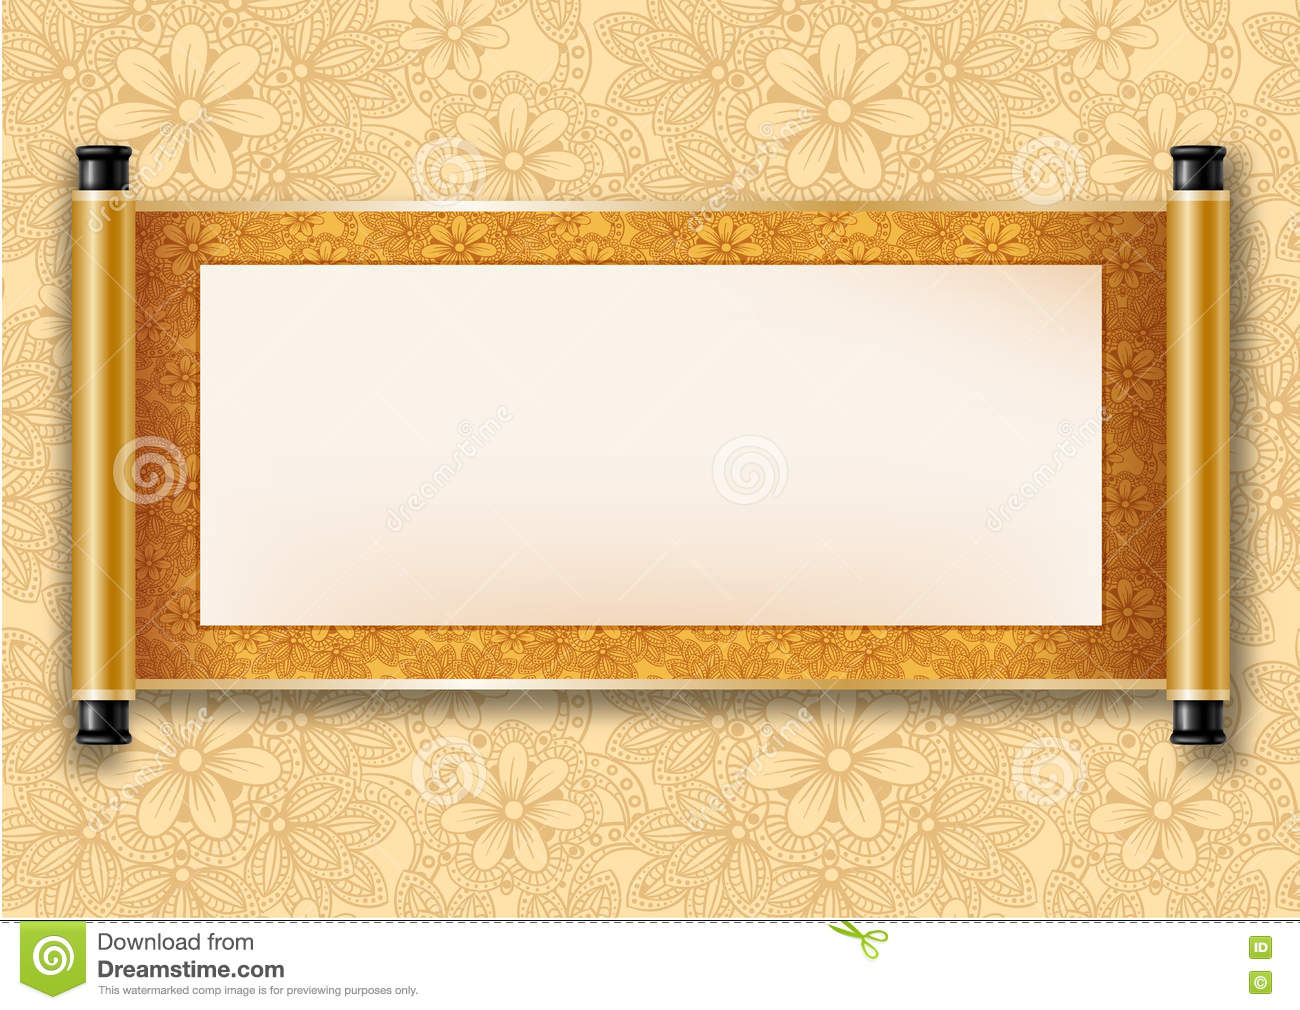 Chinese Scroll Stock Vector - Image: 71134557